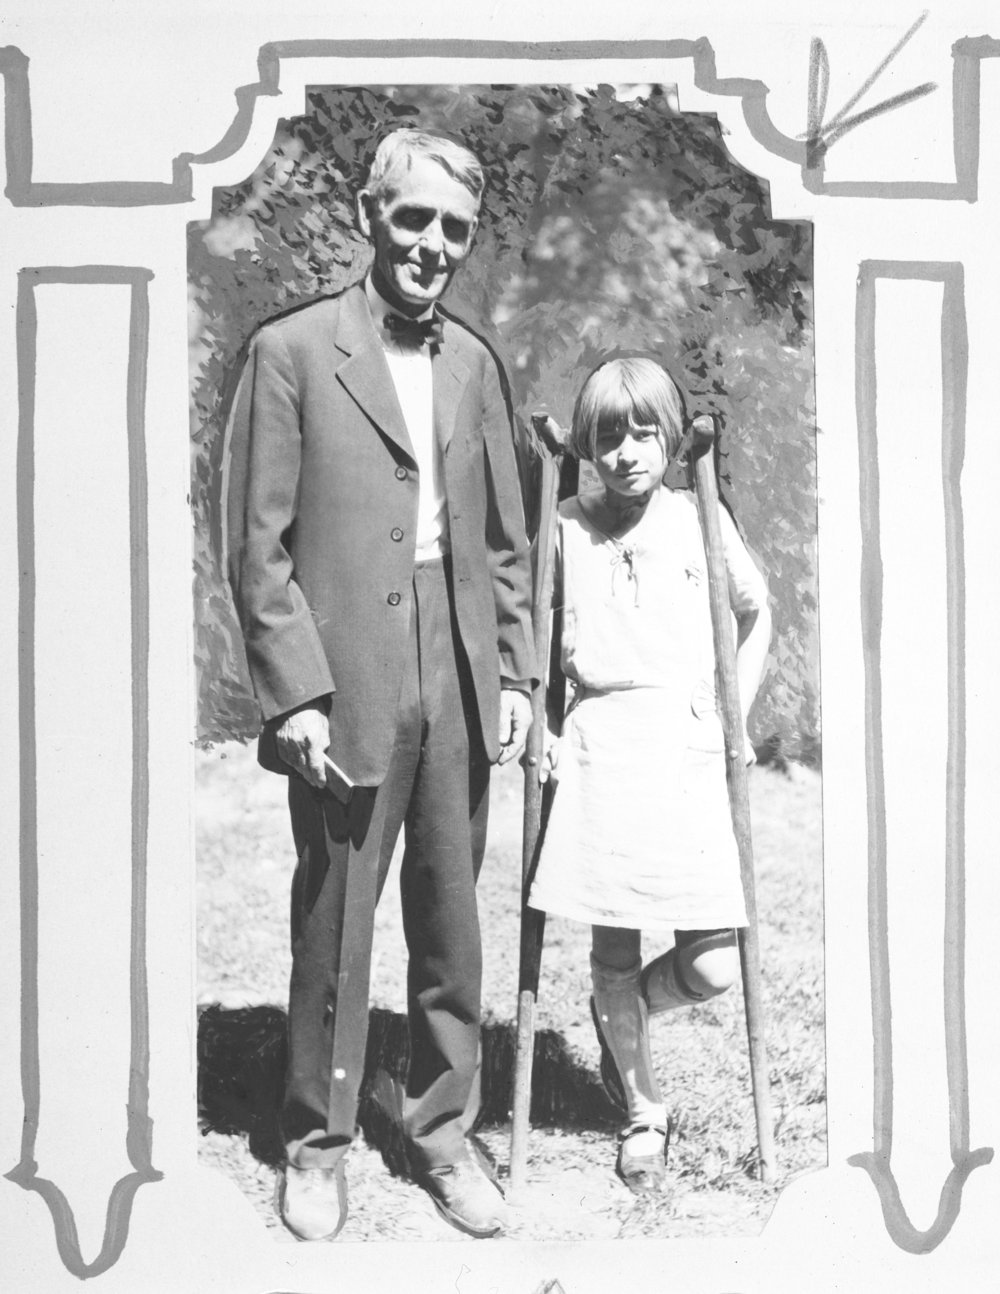 Arthur Capper and young girl with crutches